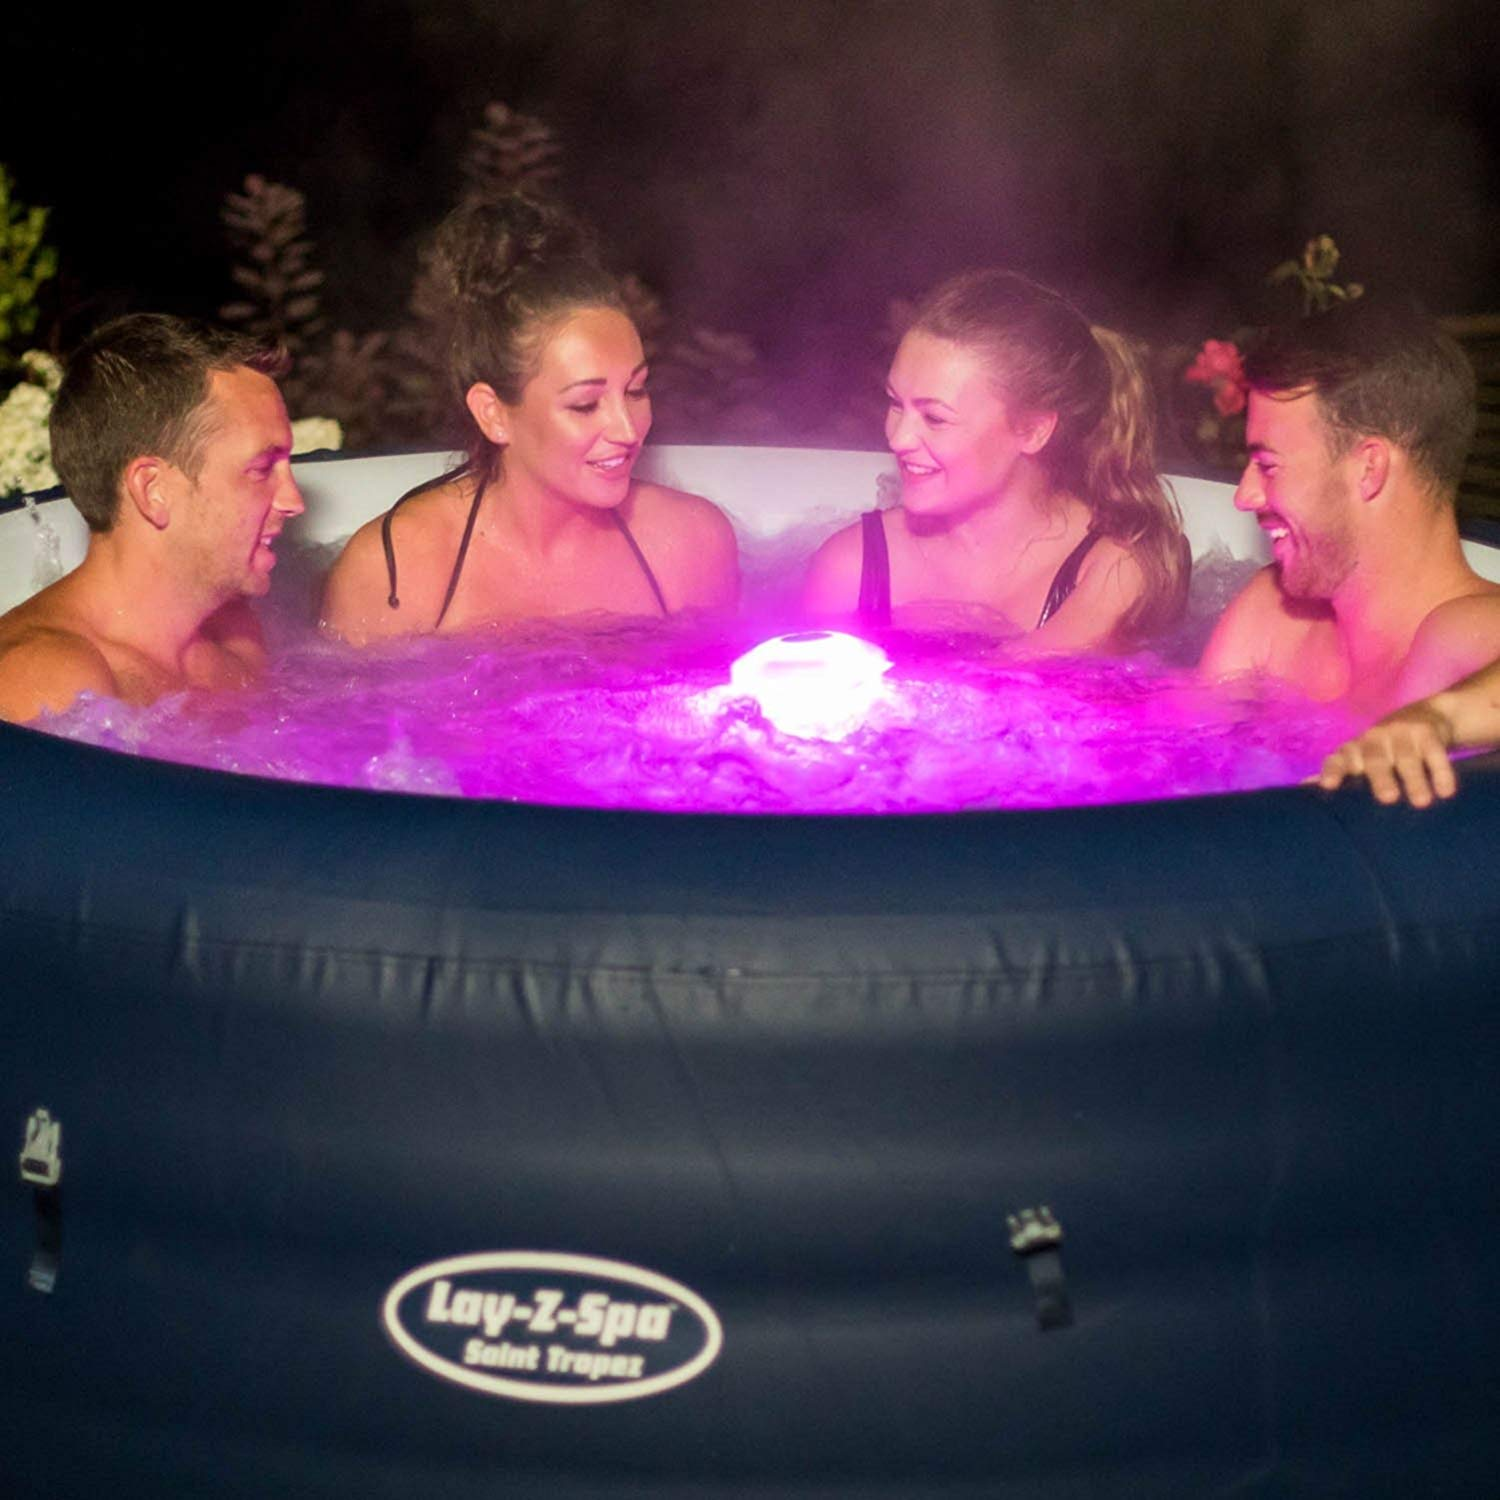 Laz-y-spa hot tub